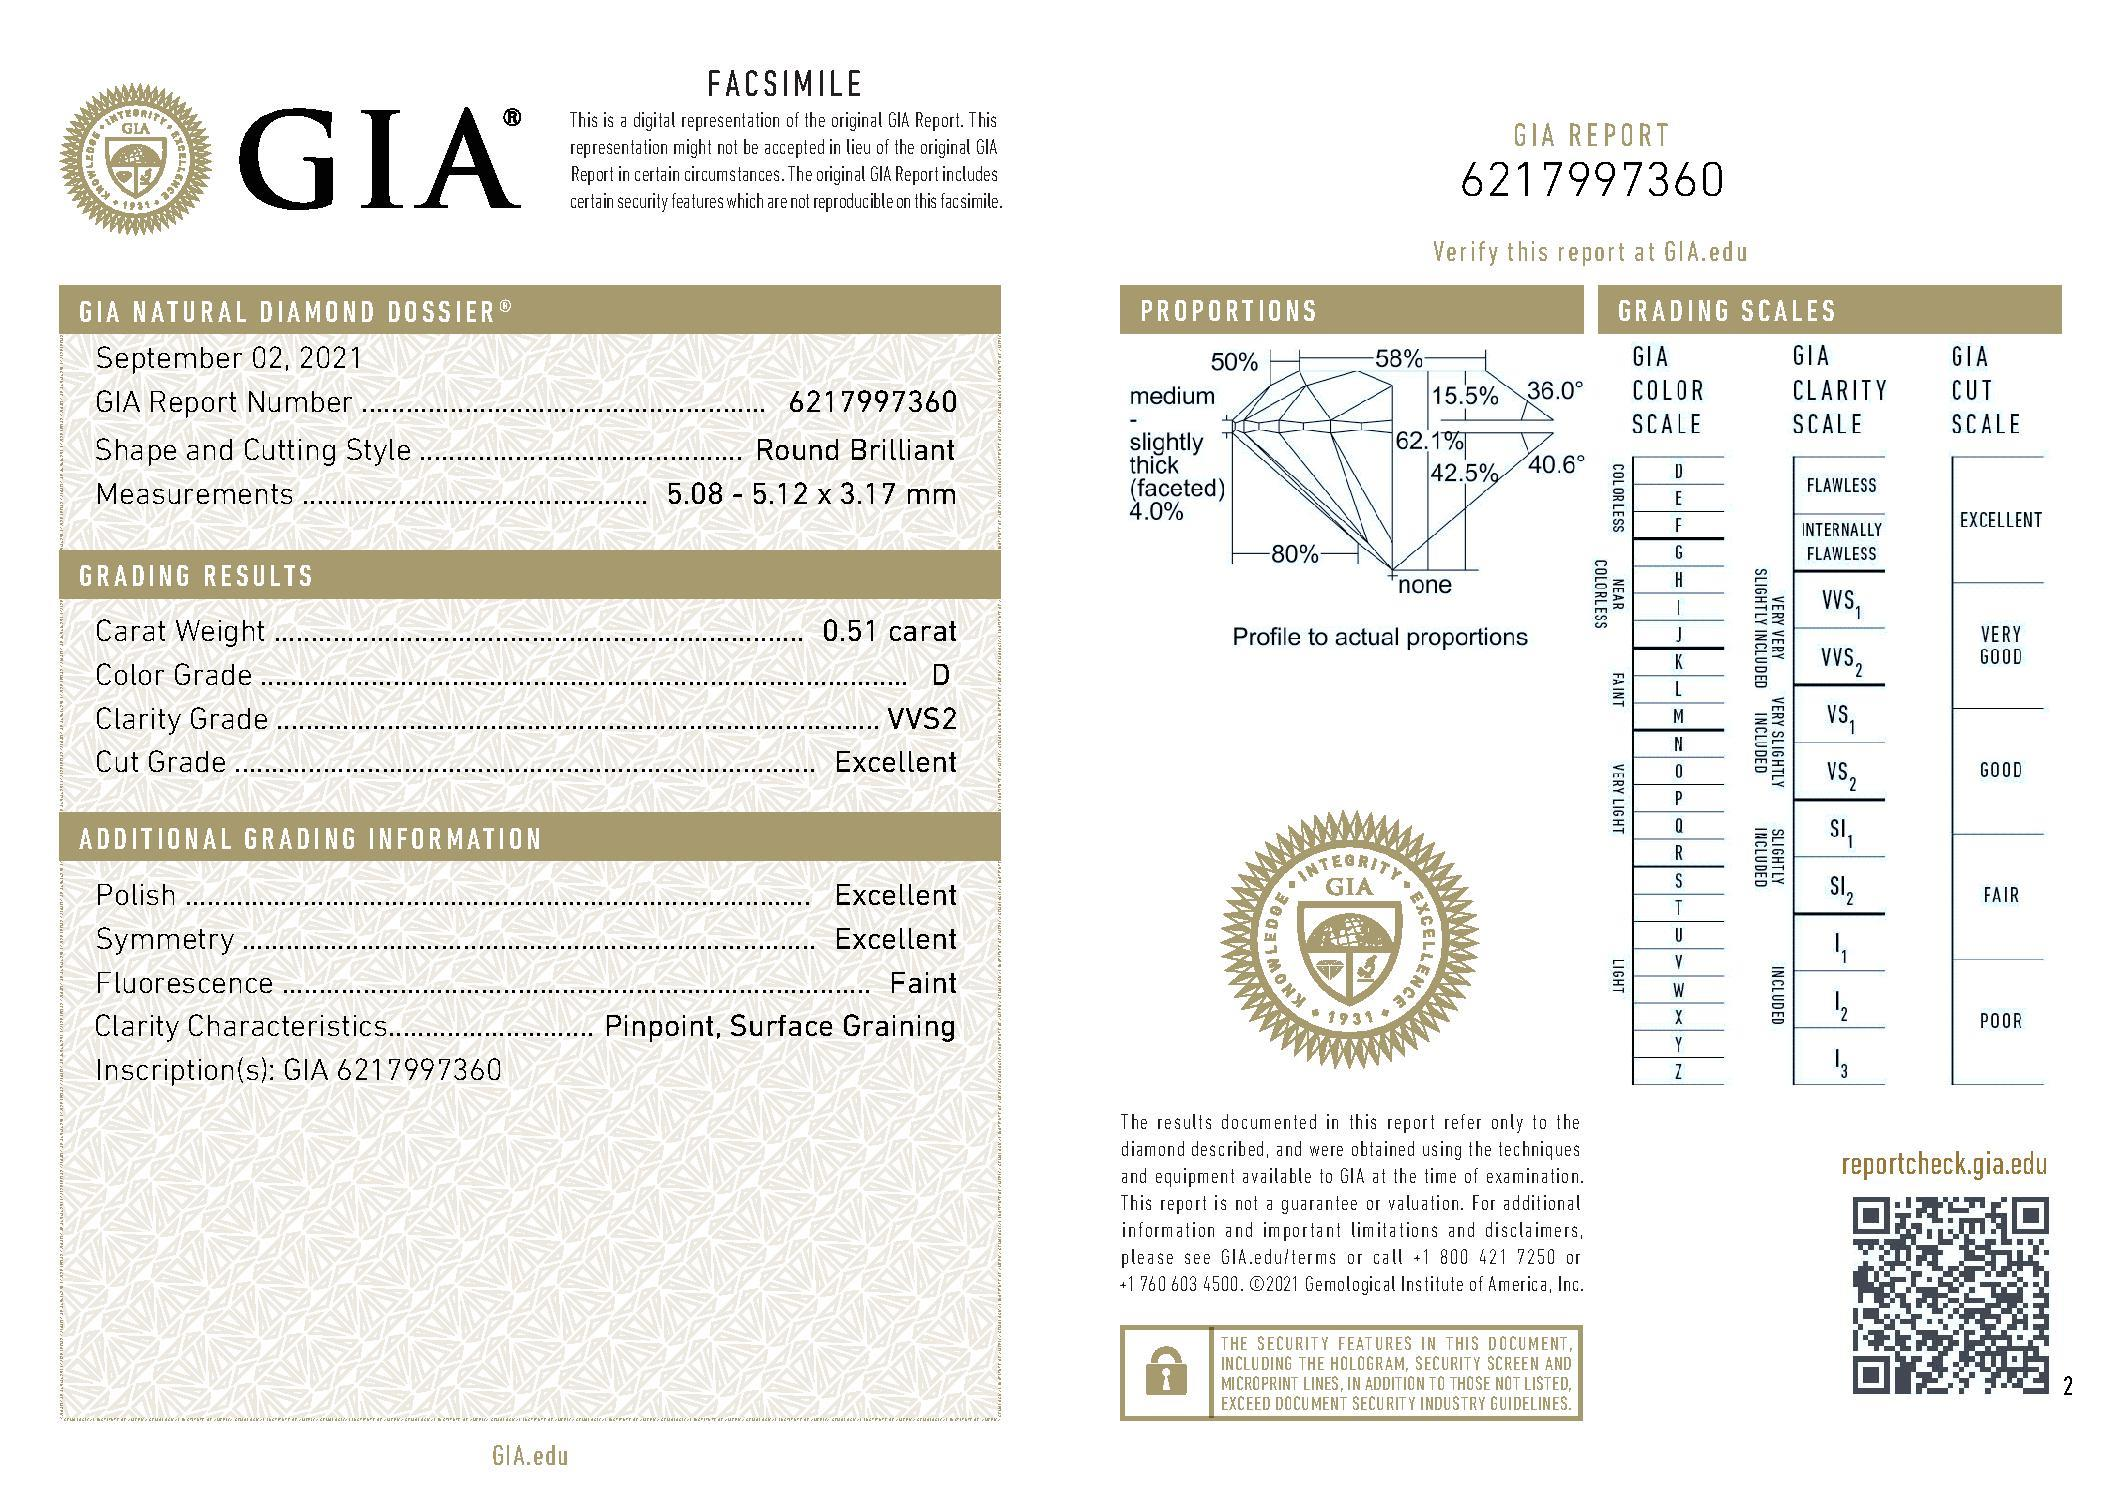 This is a 0.51 carat round shape, D color, VVS2 clarity natural diamond accompanied by a GIA grading report.